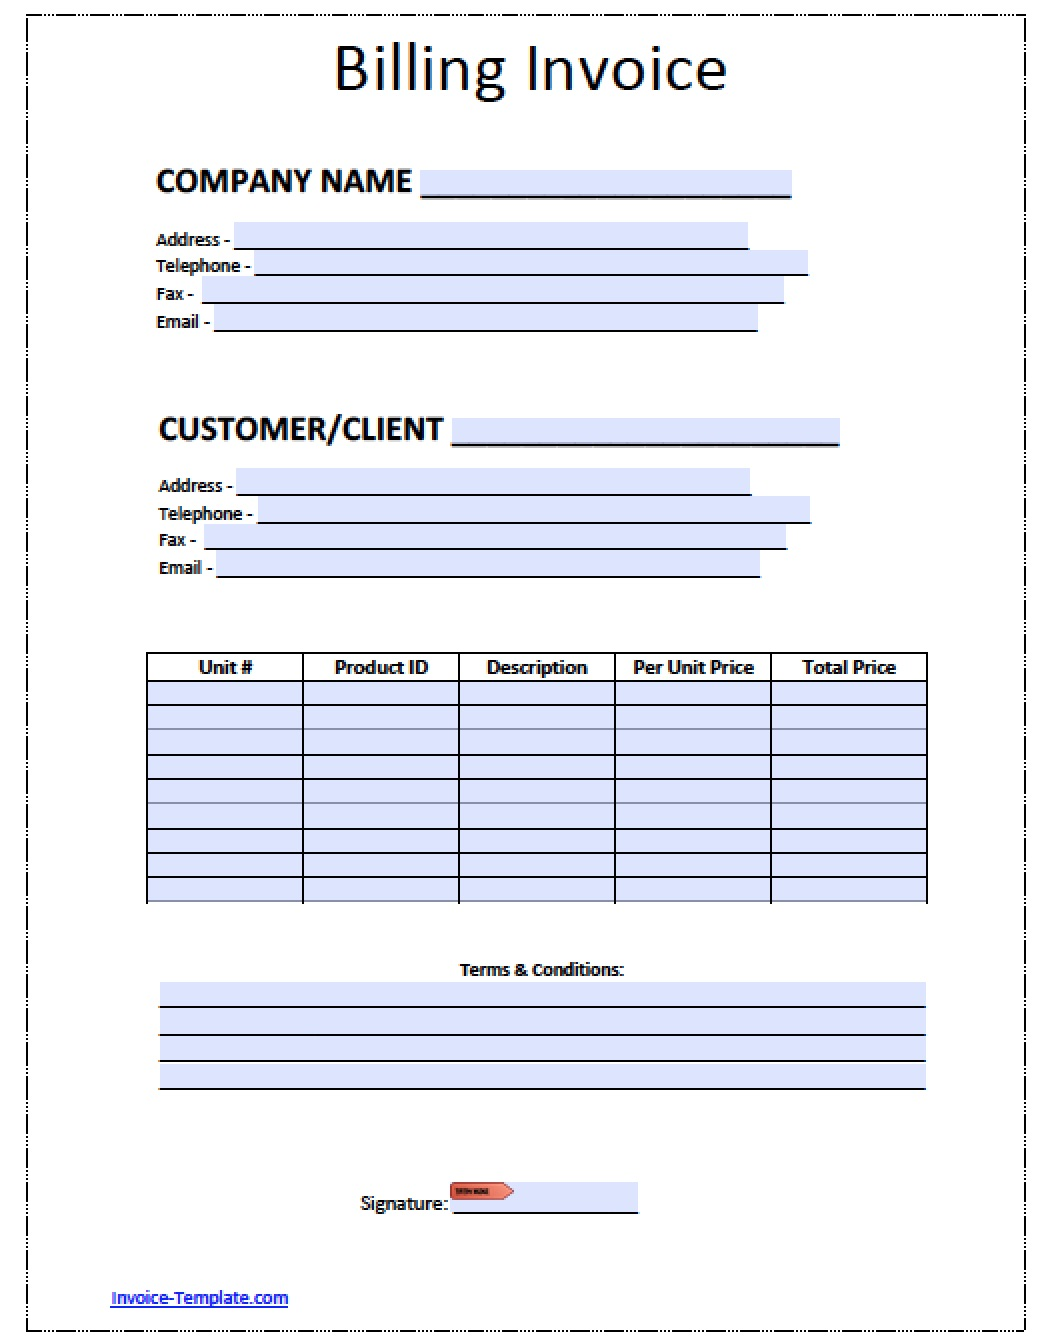 Free Billing Invoice Template Excel PDF Word Doc - Billing invoices templates